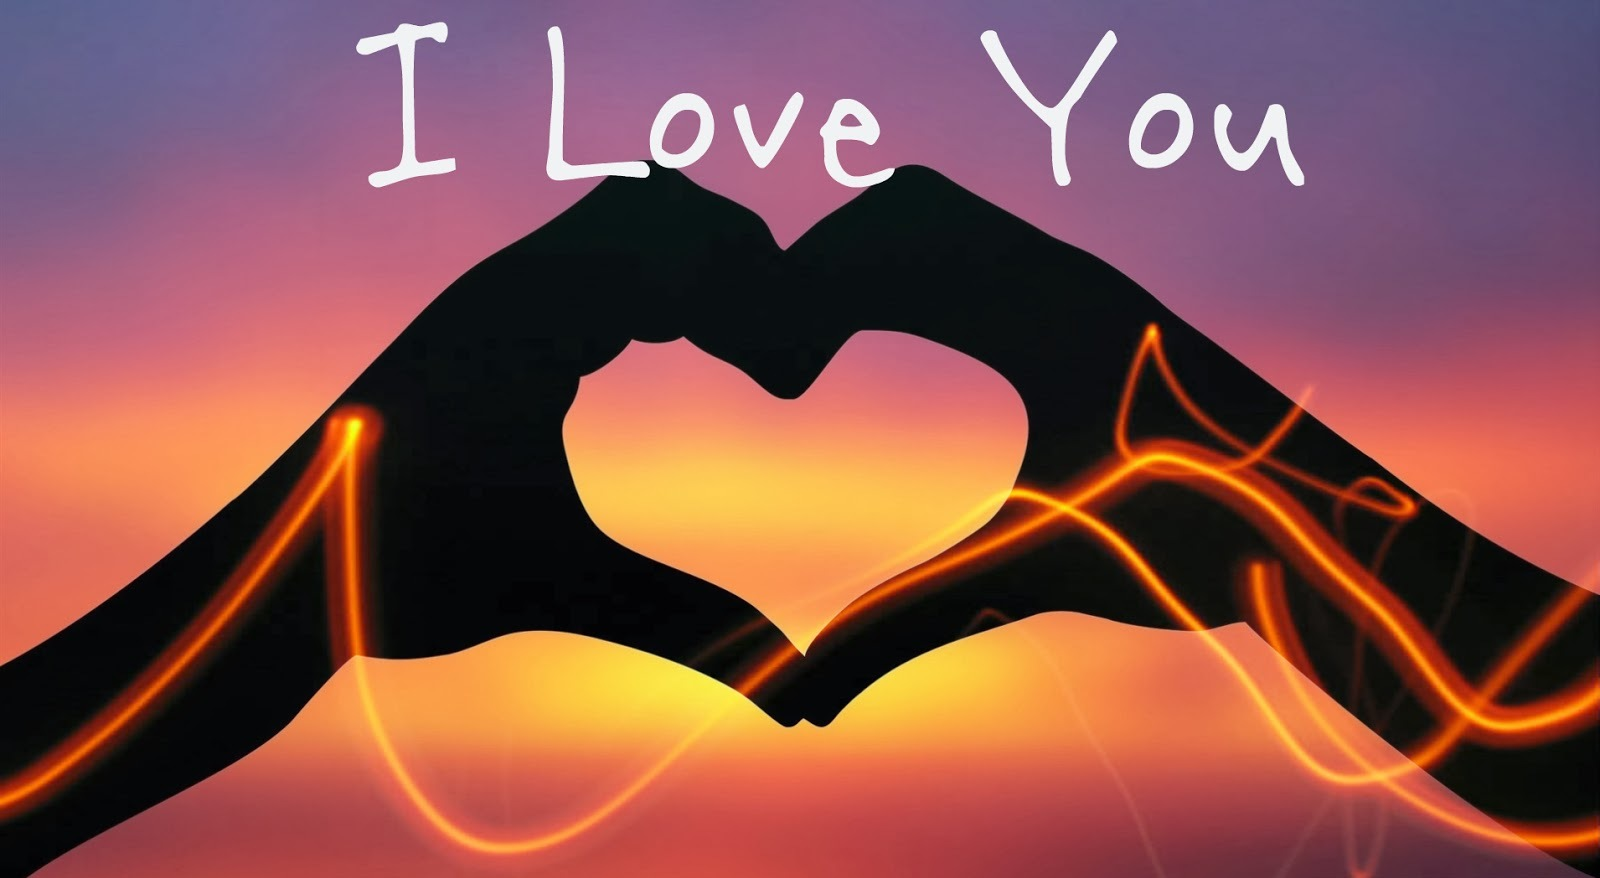 Love You Too Hd Wallpaper : I Love You Wallpapers, Pictures, Images